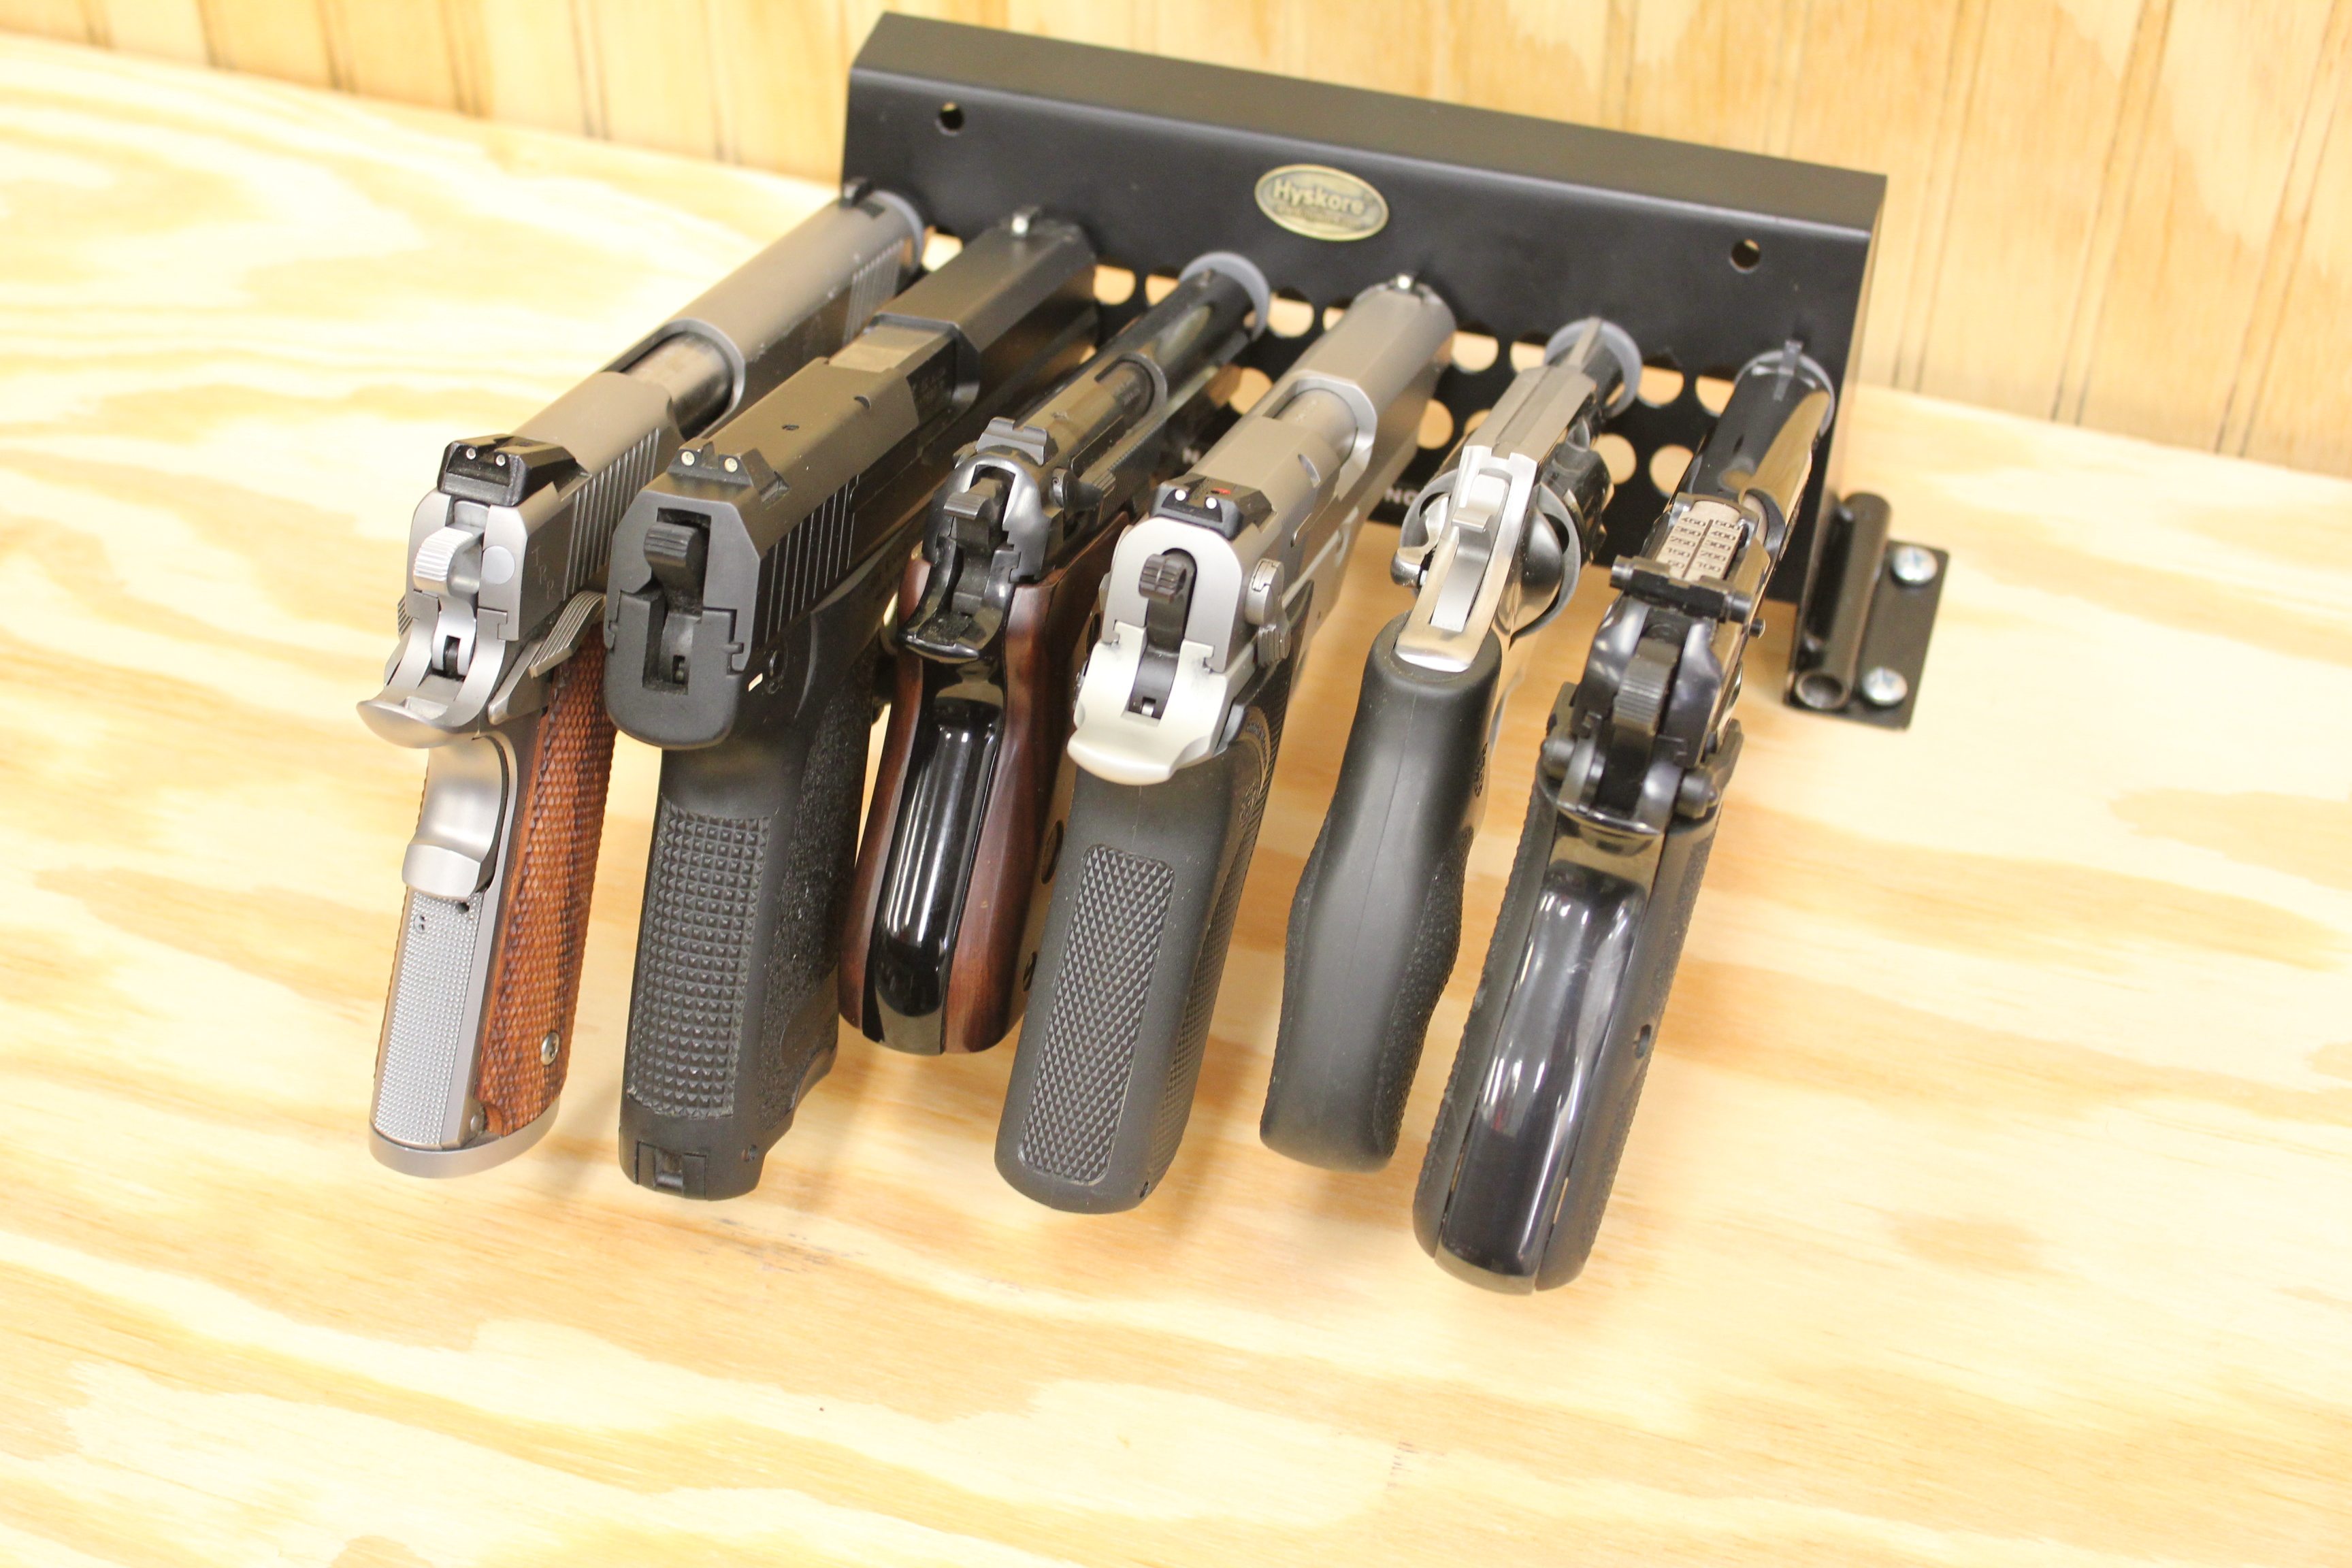 Hyskore 174 Announces The Six Gun Speed Rack The Ultimate